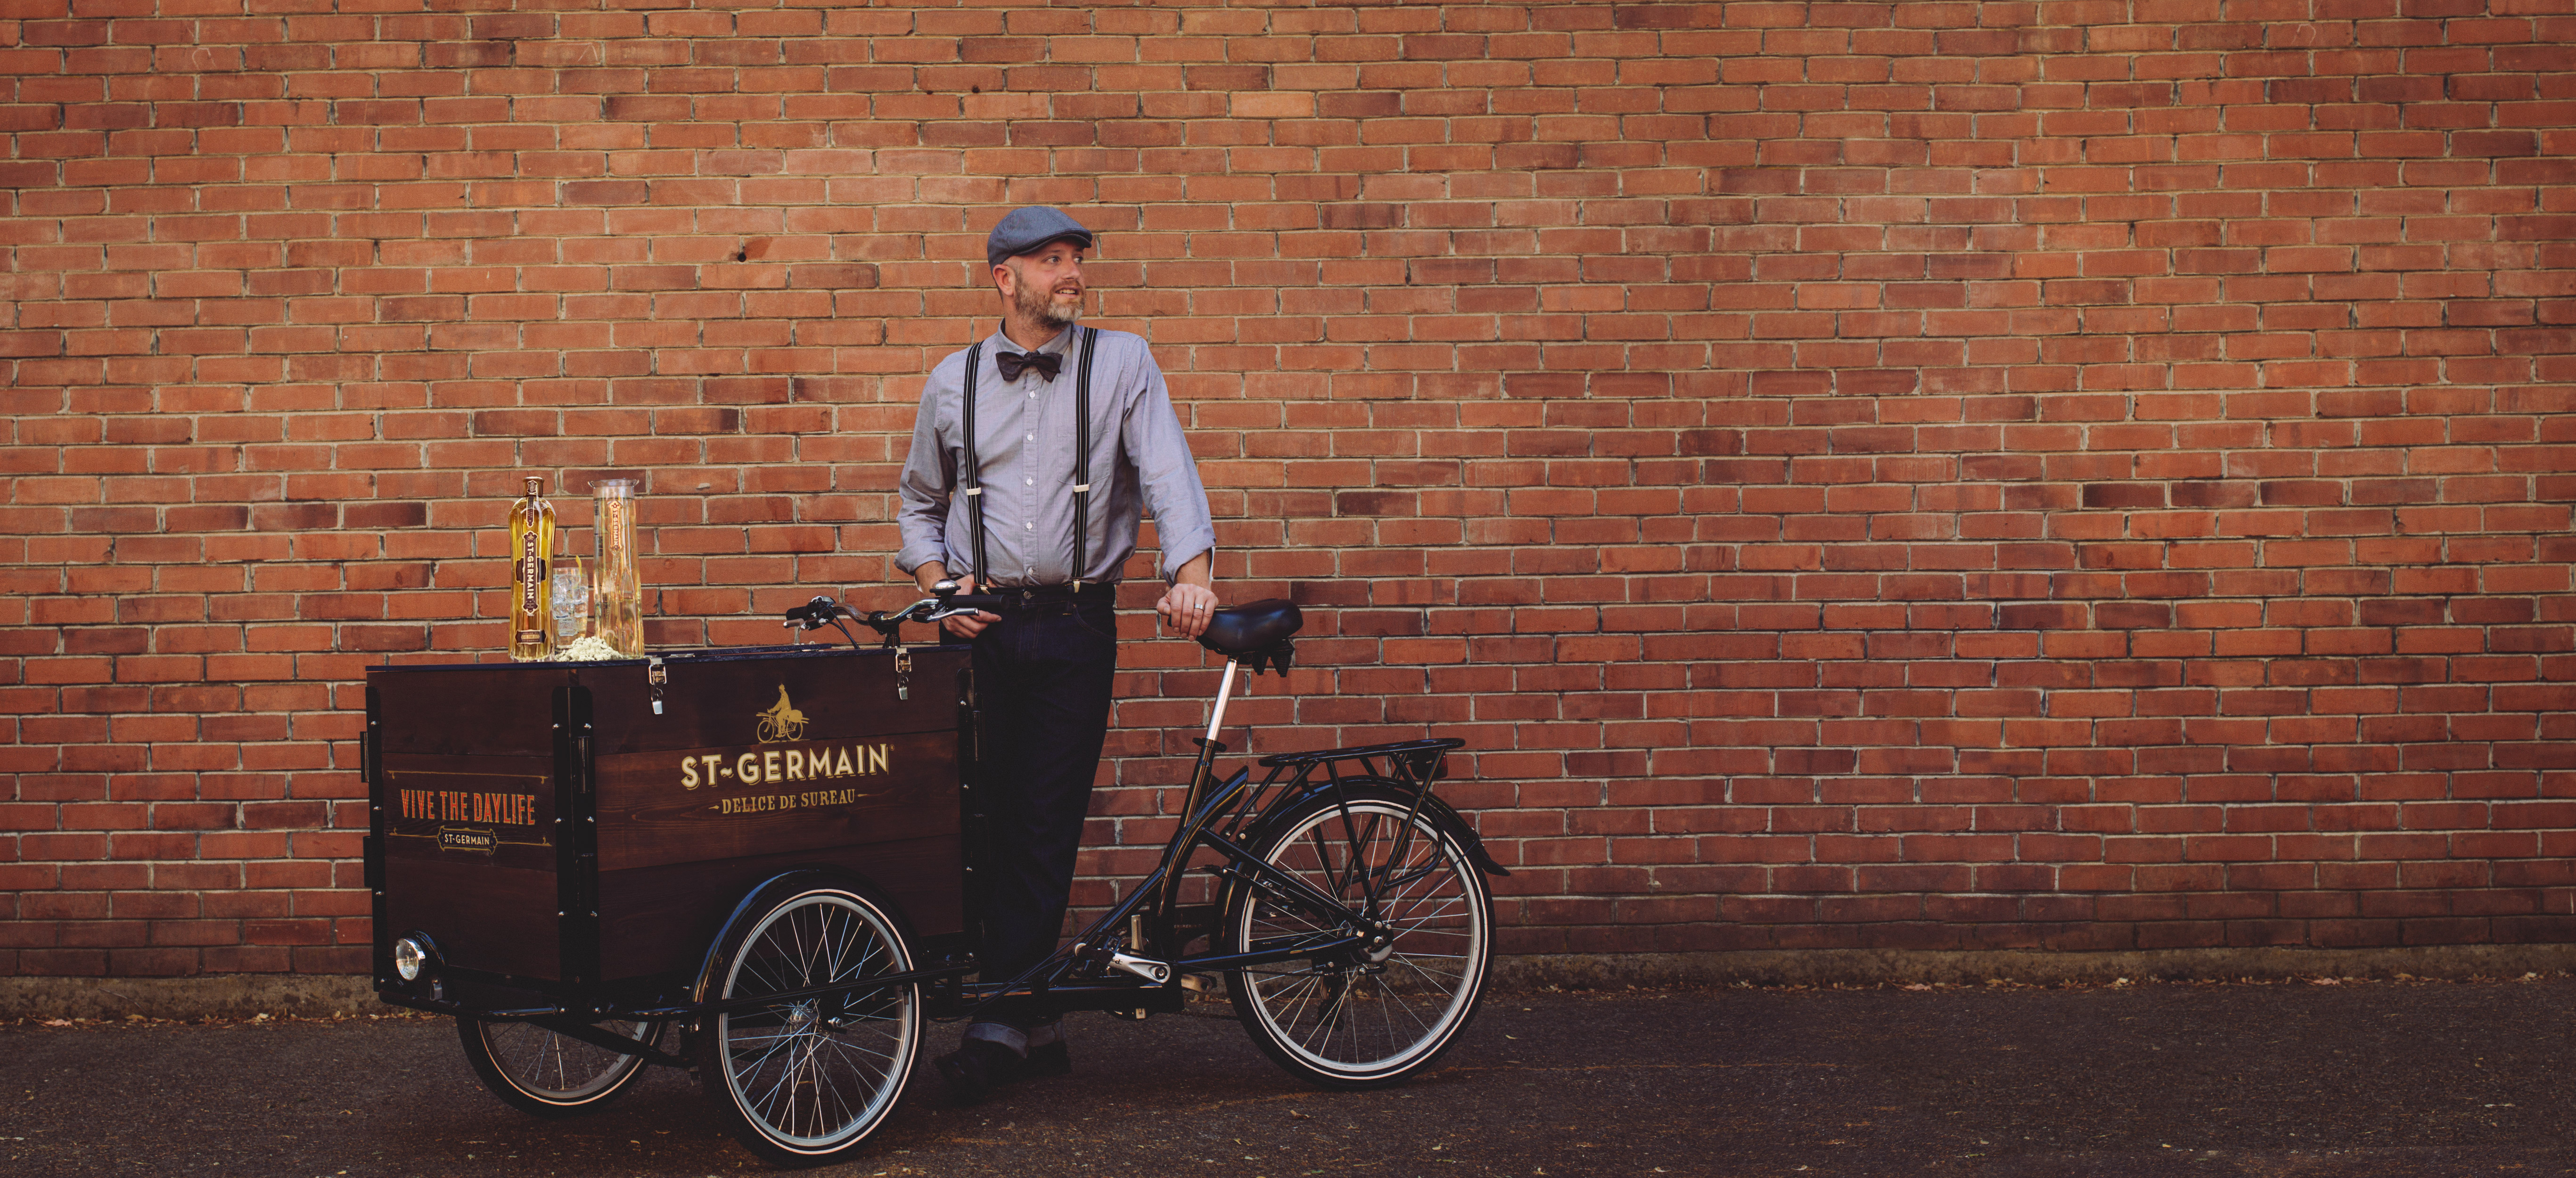 This week, St-Germain and startup Minibar are using a fleet of 10 bikes to deliver cocktails across Manhattan and Brooklyn.